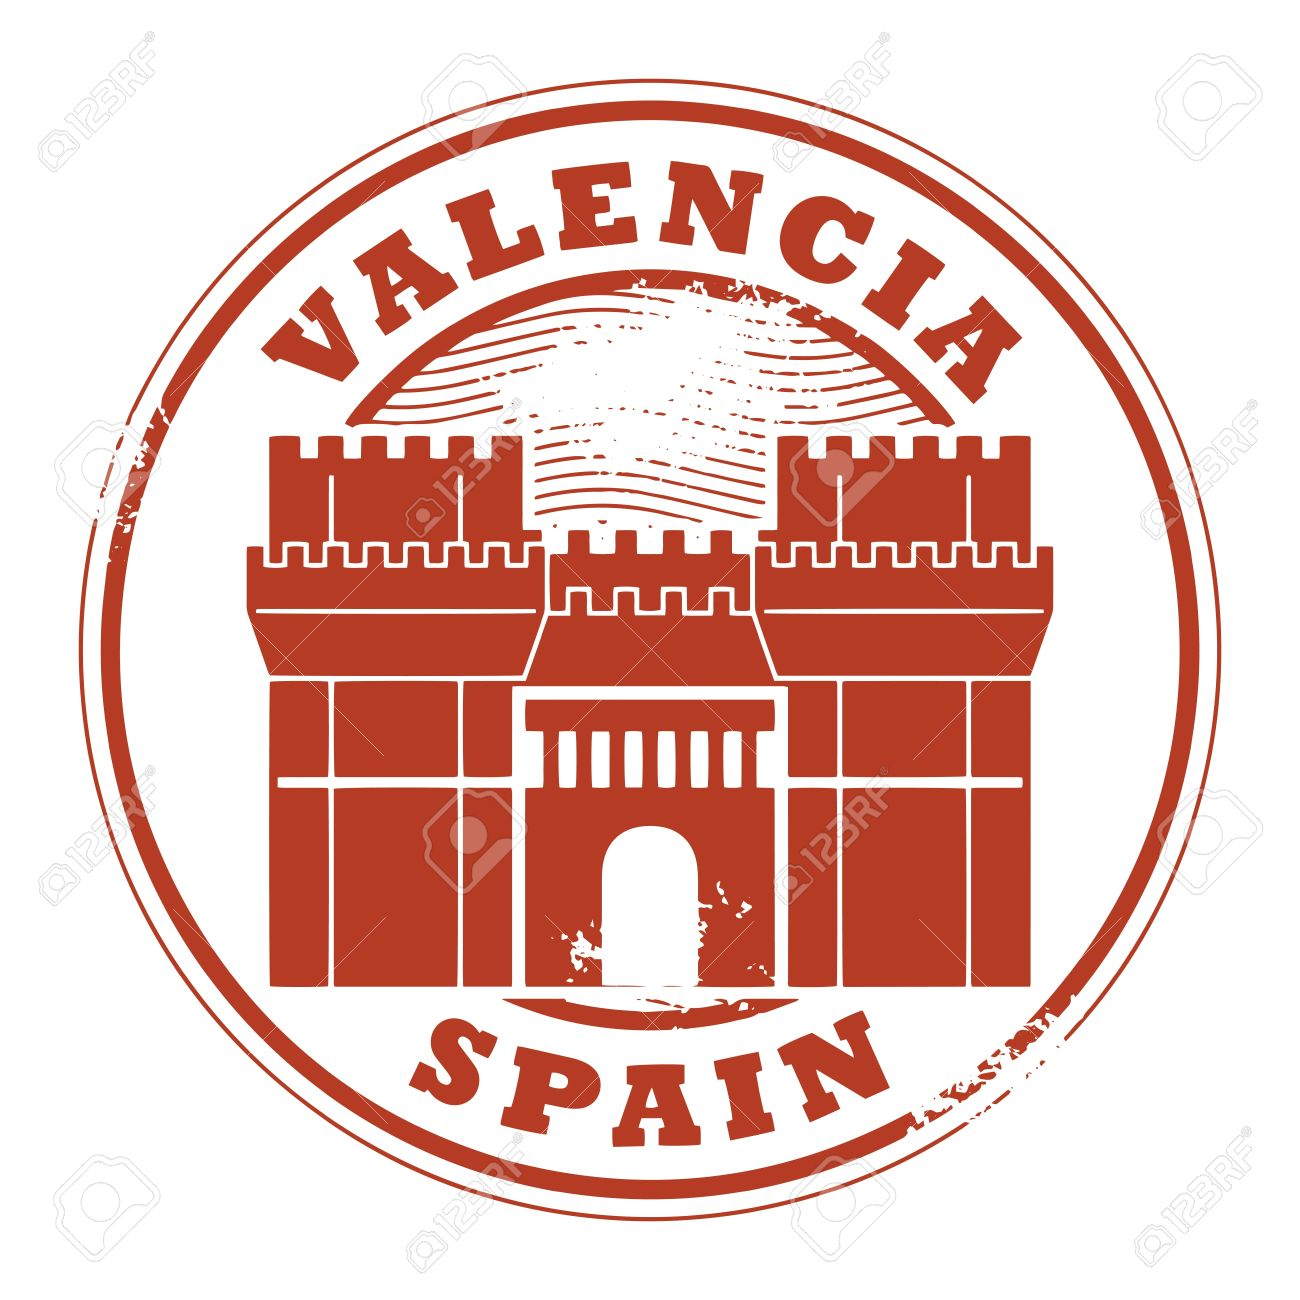 Grunge Rubber Stamp With Words Valencia, Spain Inside Royalty Free.